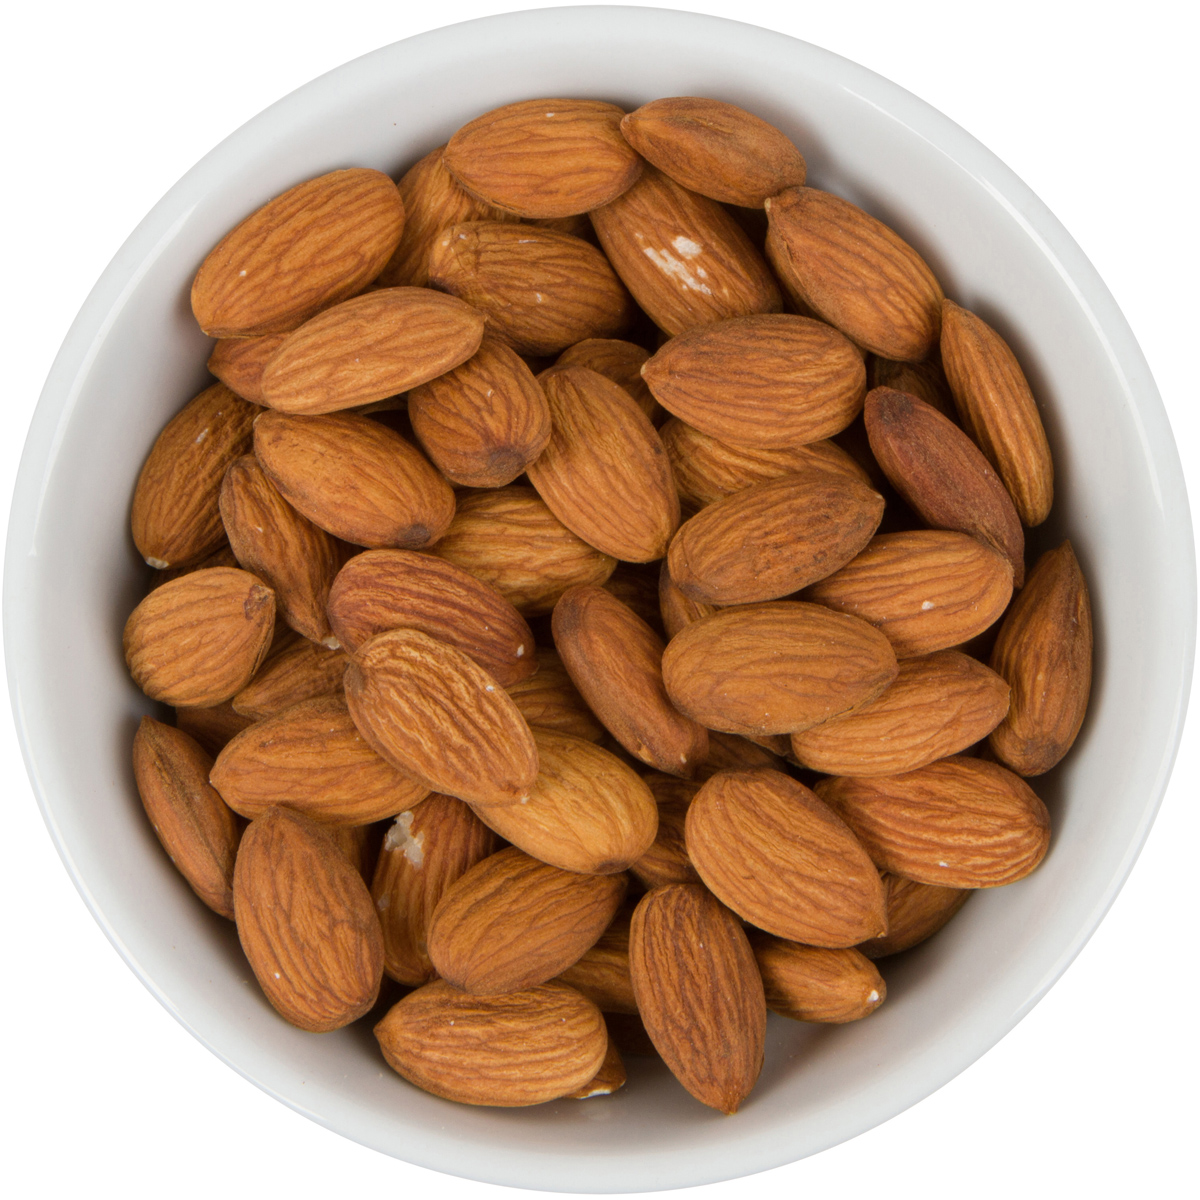 Nonpareil Almonds